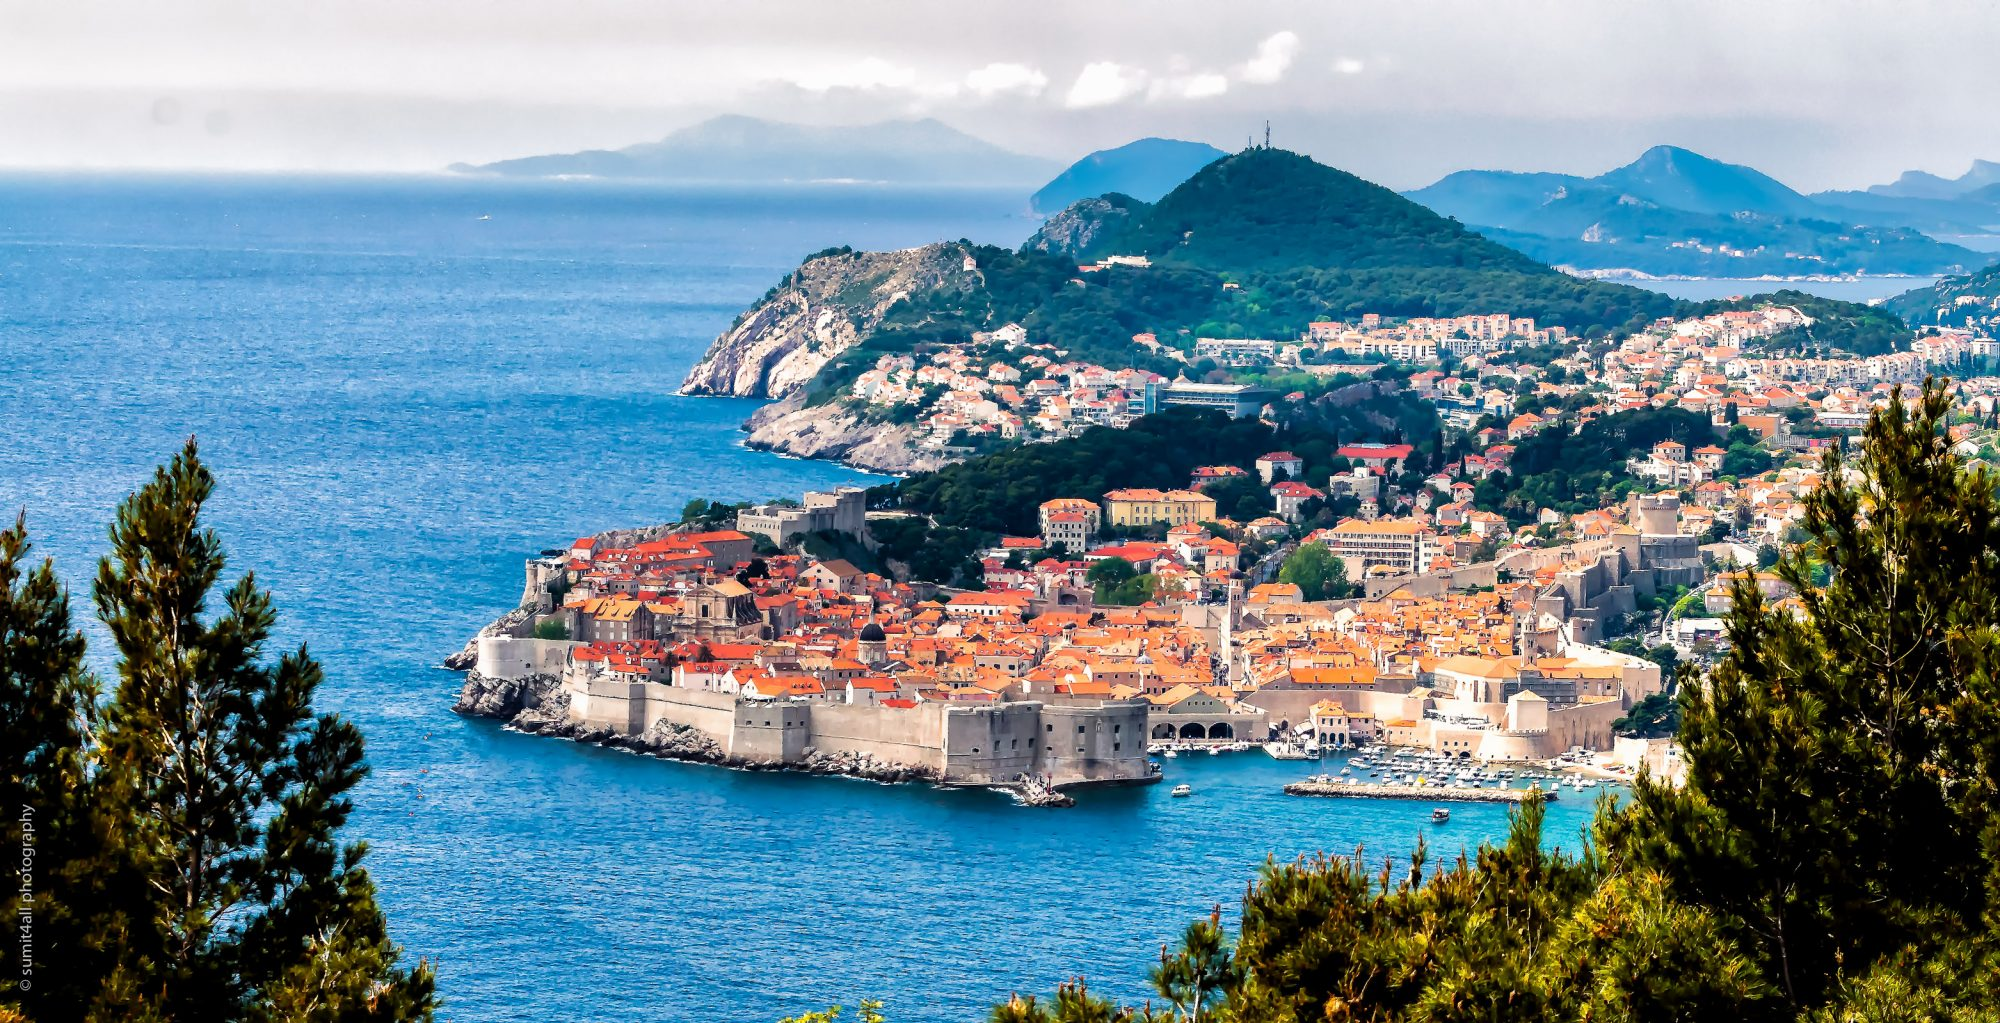 The beautiful city of Dubrovnik by the Adriatic Sea in Croatia